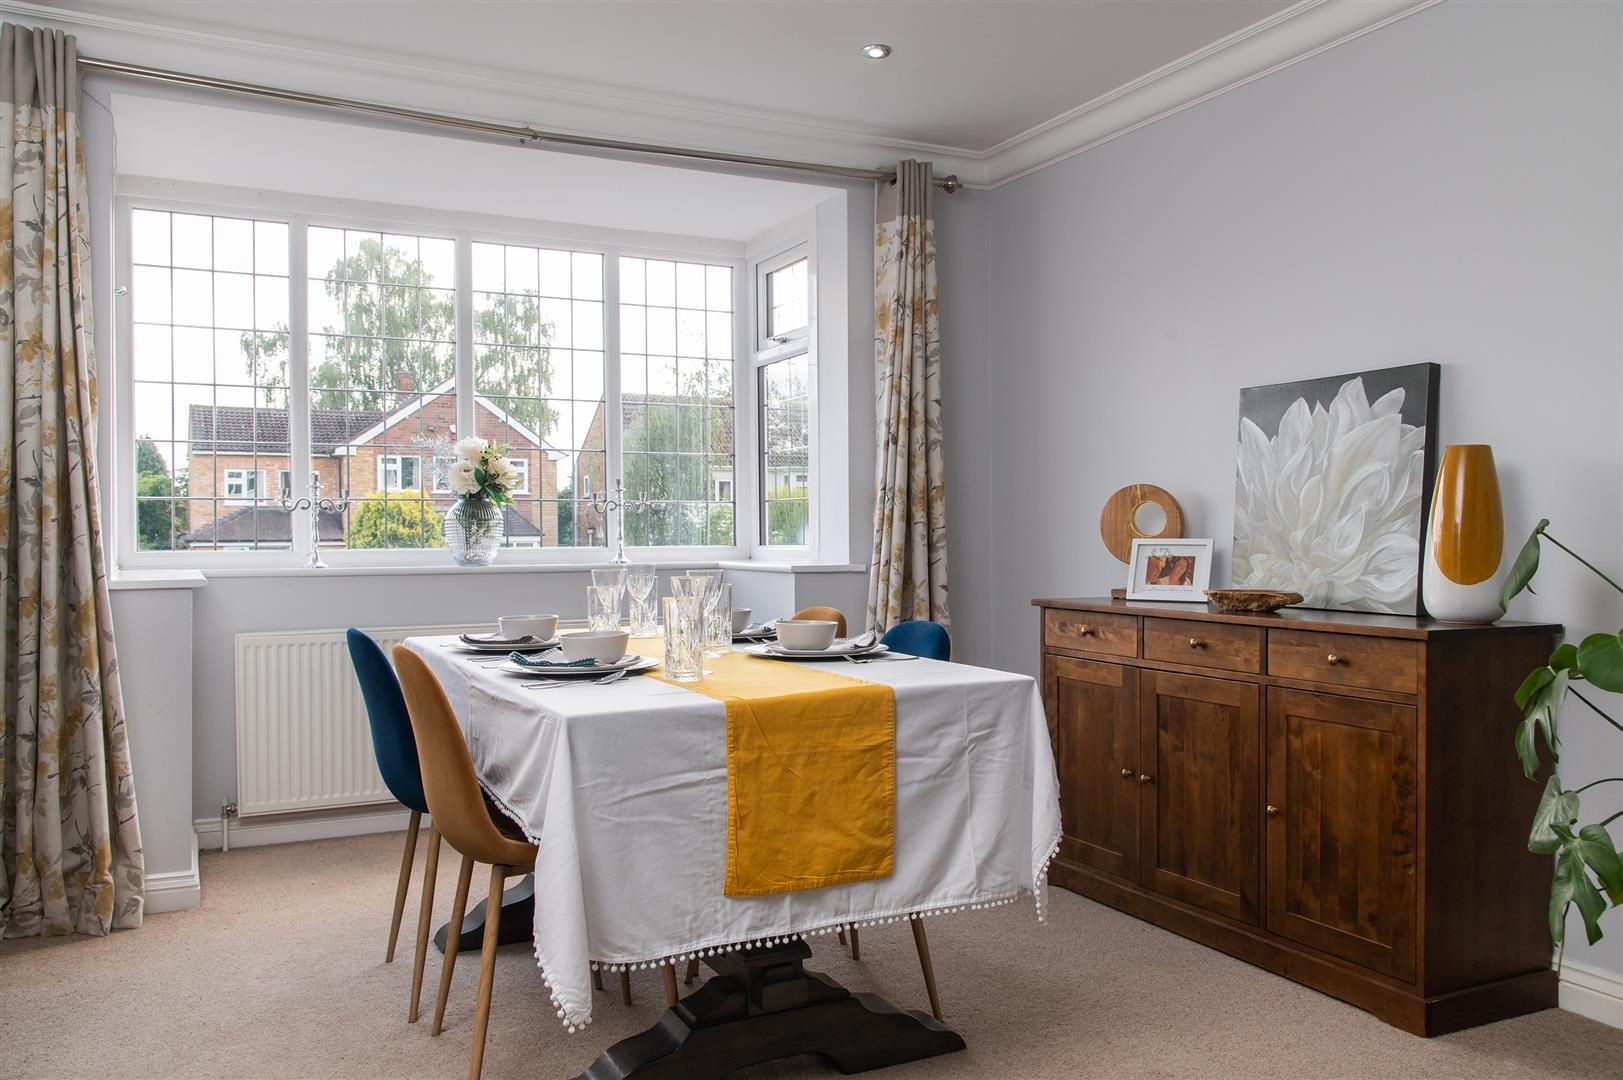 5 bed detached for sale in Hagley  - Property Image 3